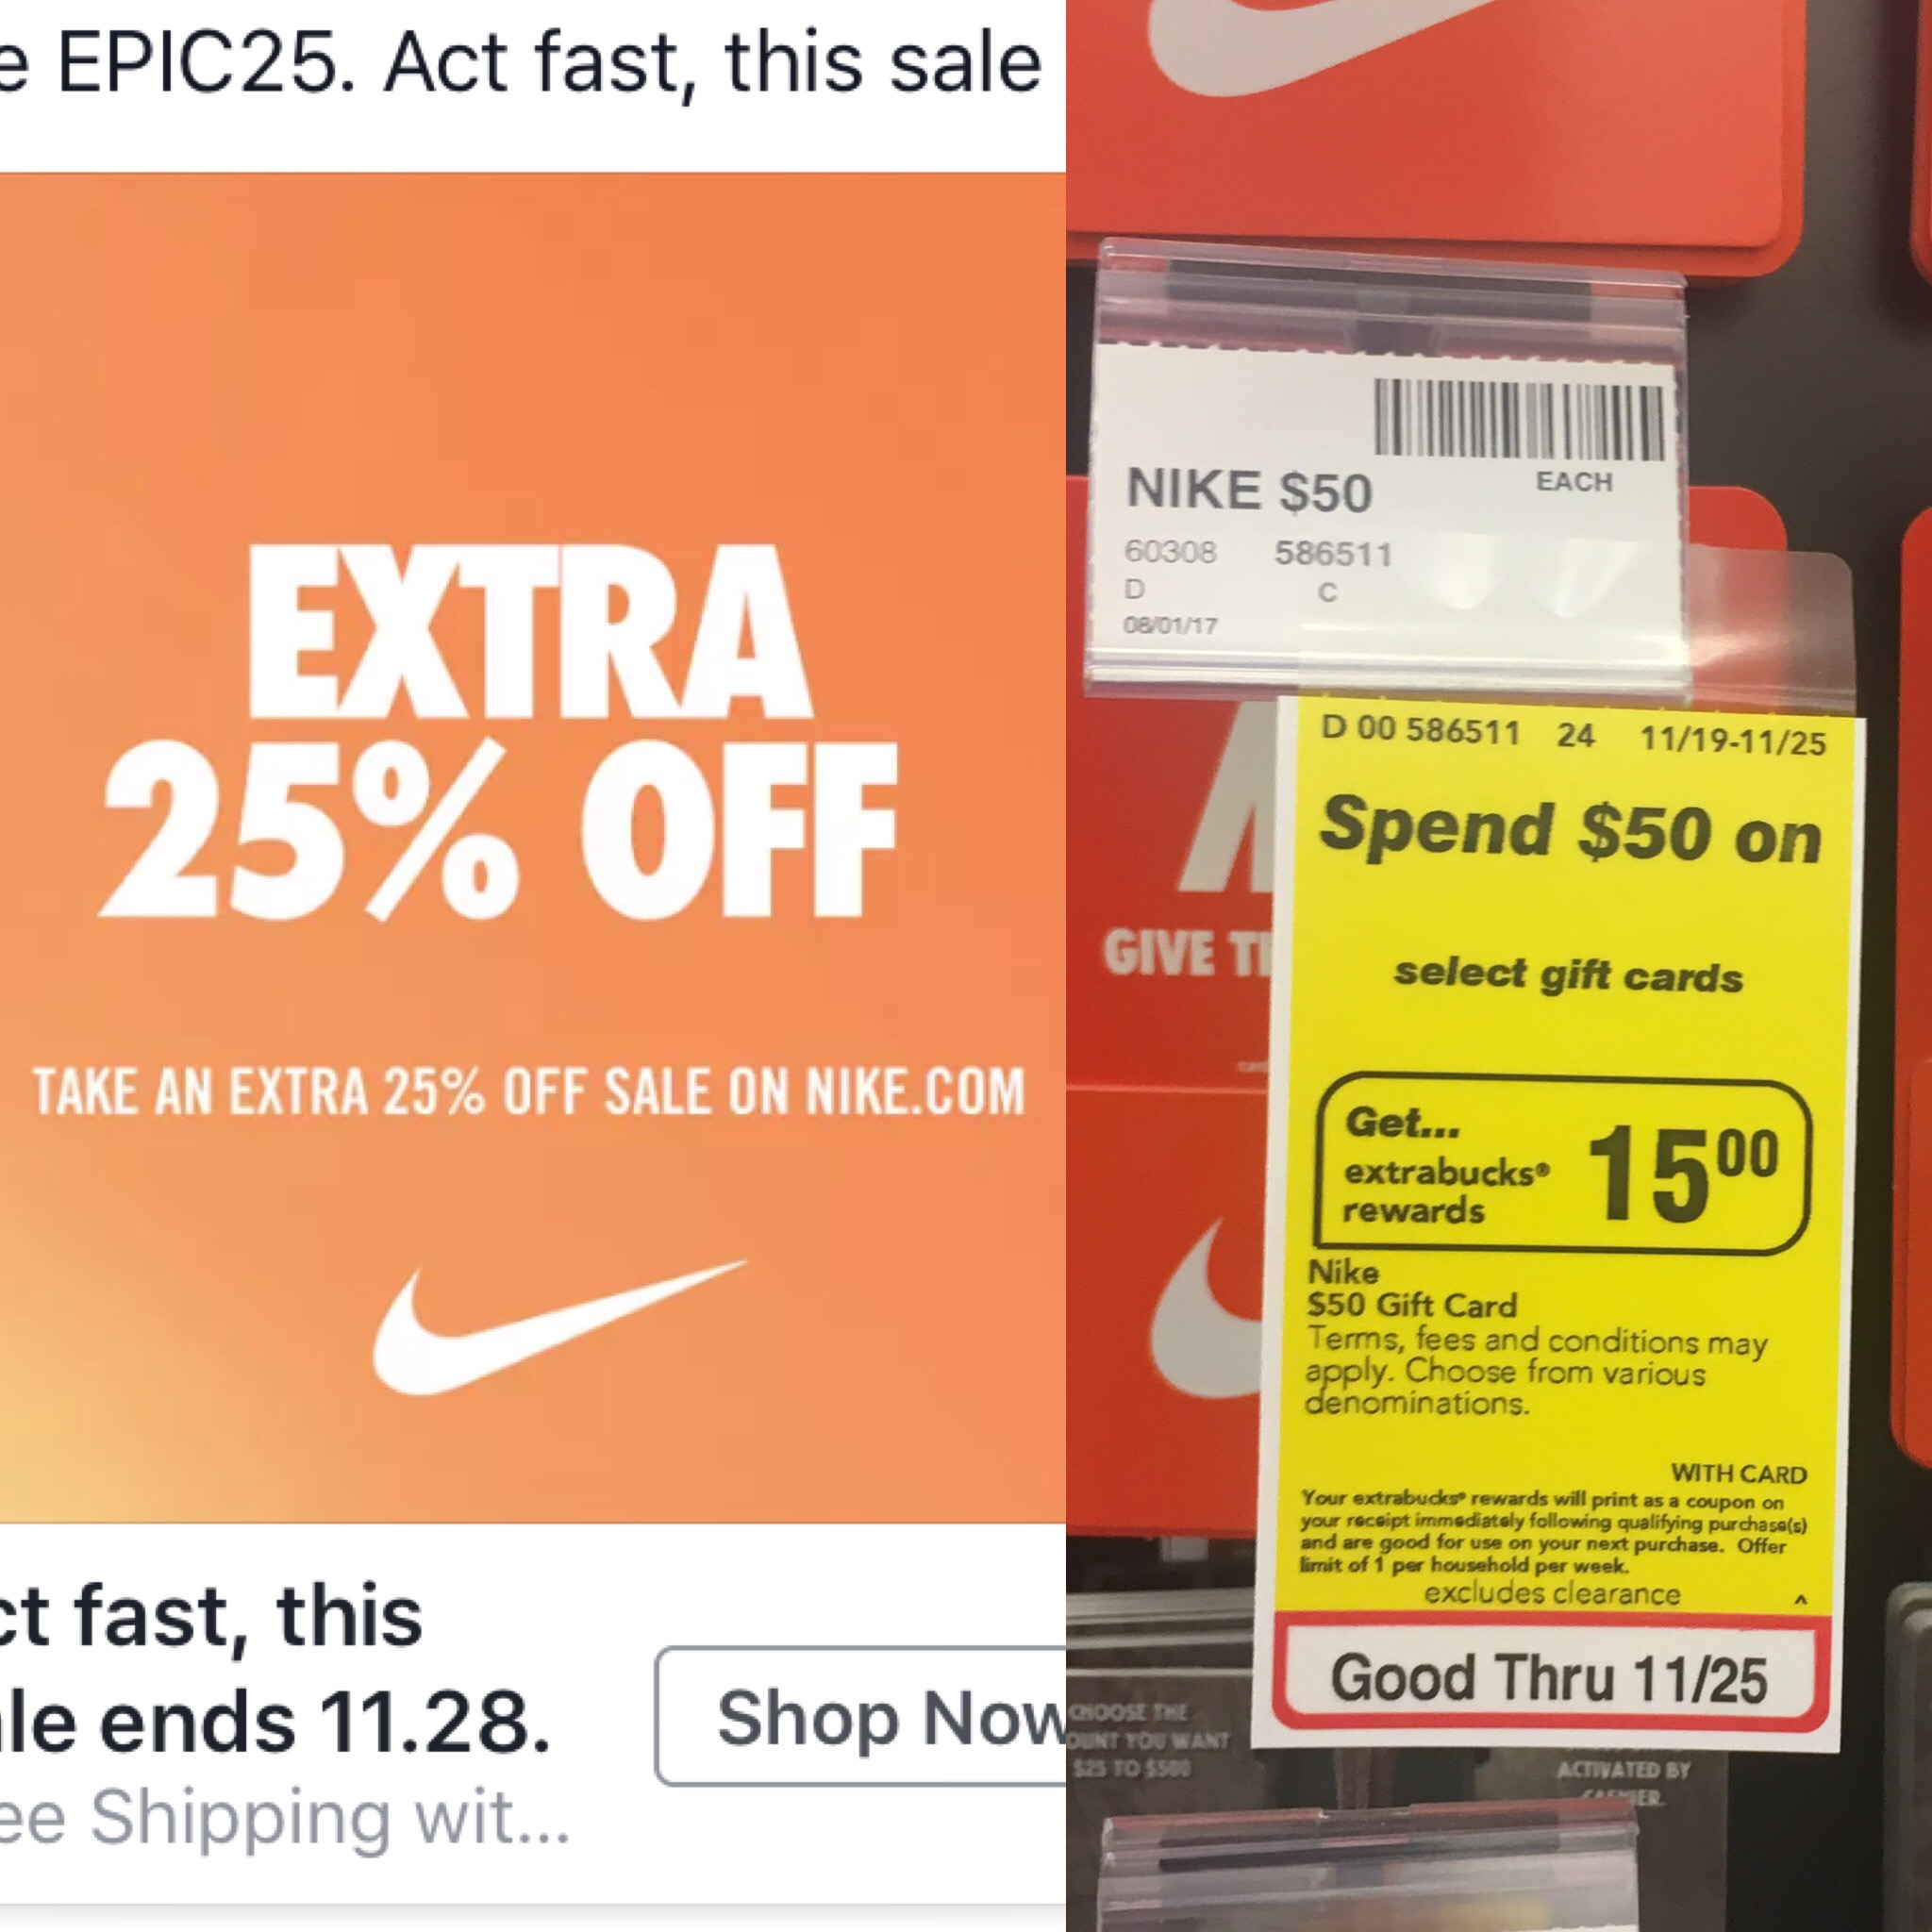 Great Deal on Nike Merchandise With CVS Gift Card and Nike Promo ...